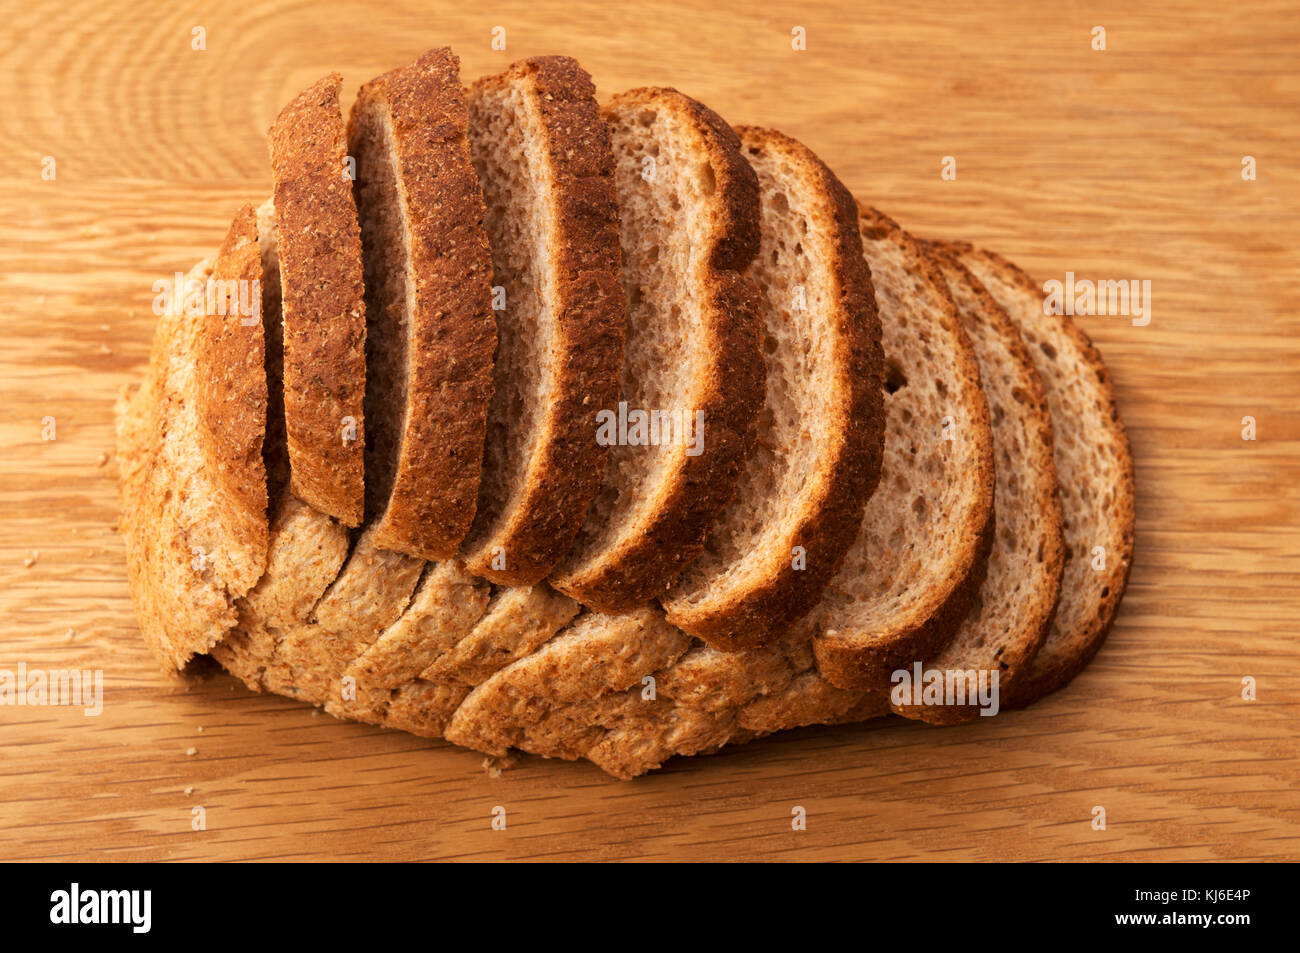 Hovis Nimble wholemeal bread - Stock Image